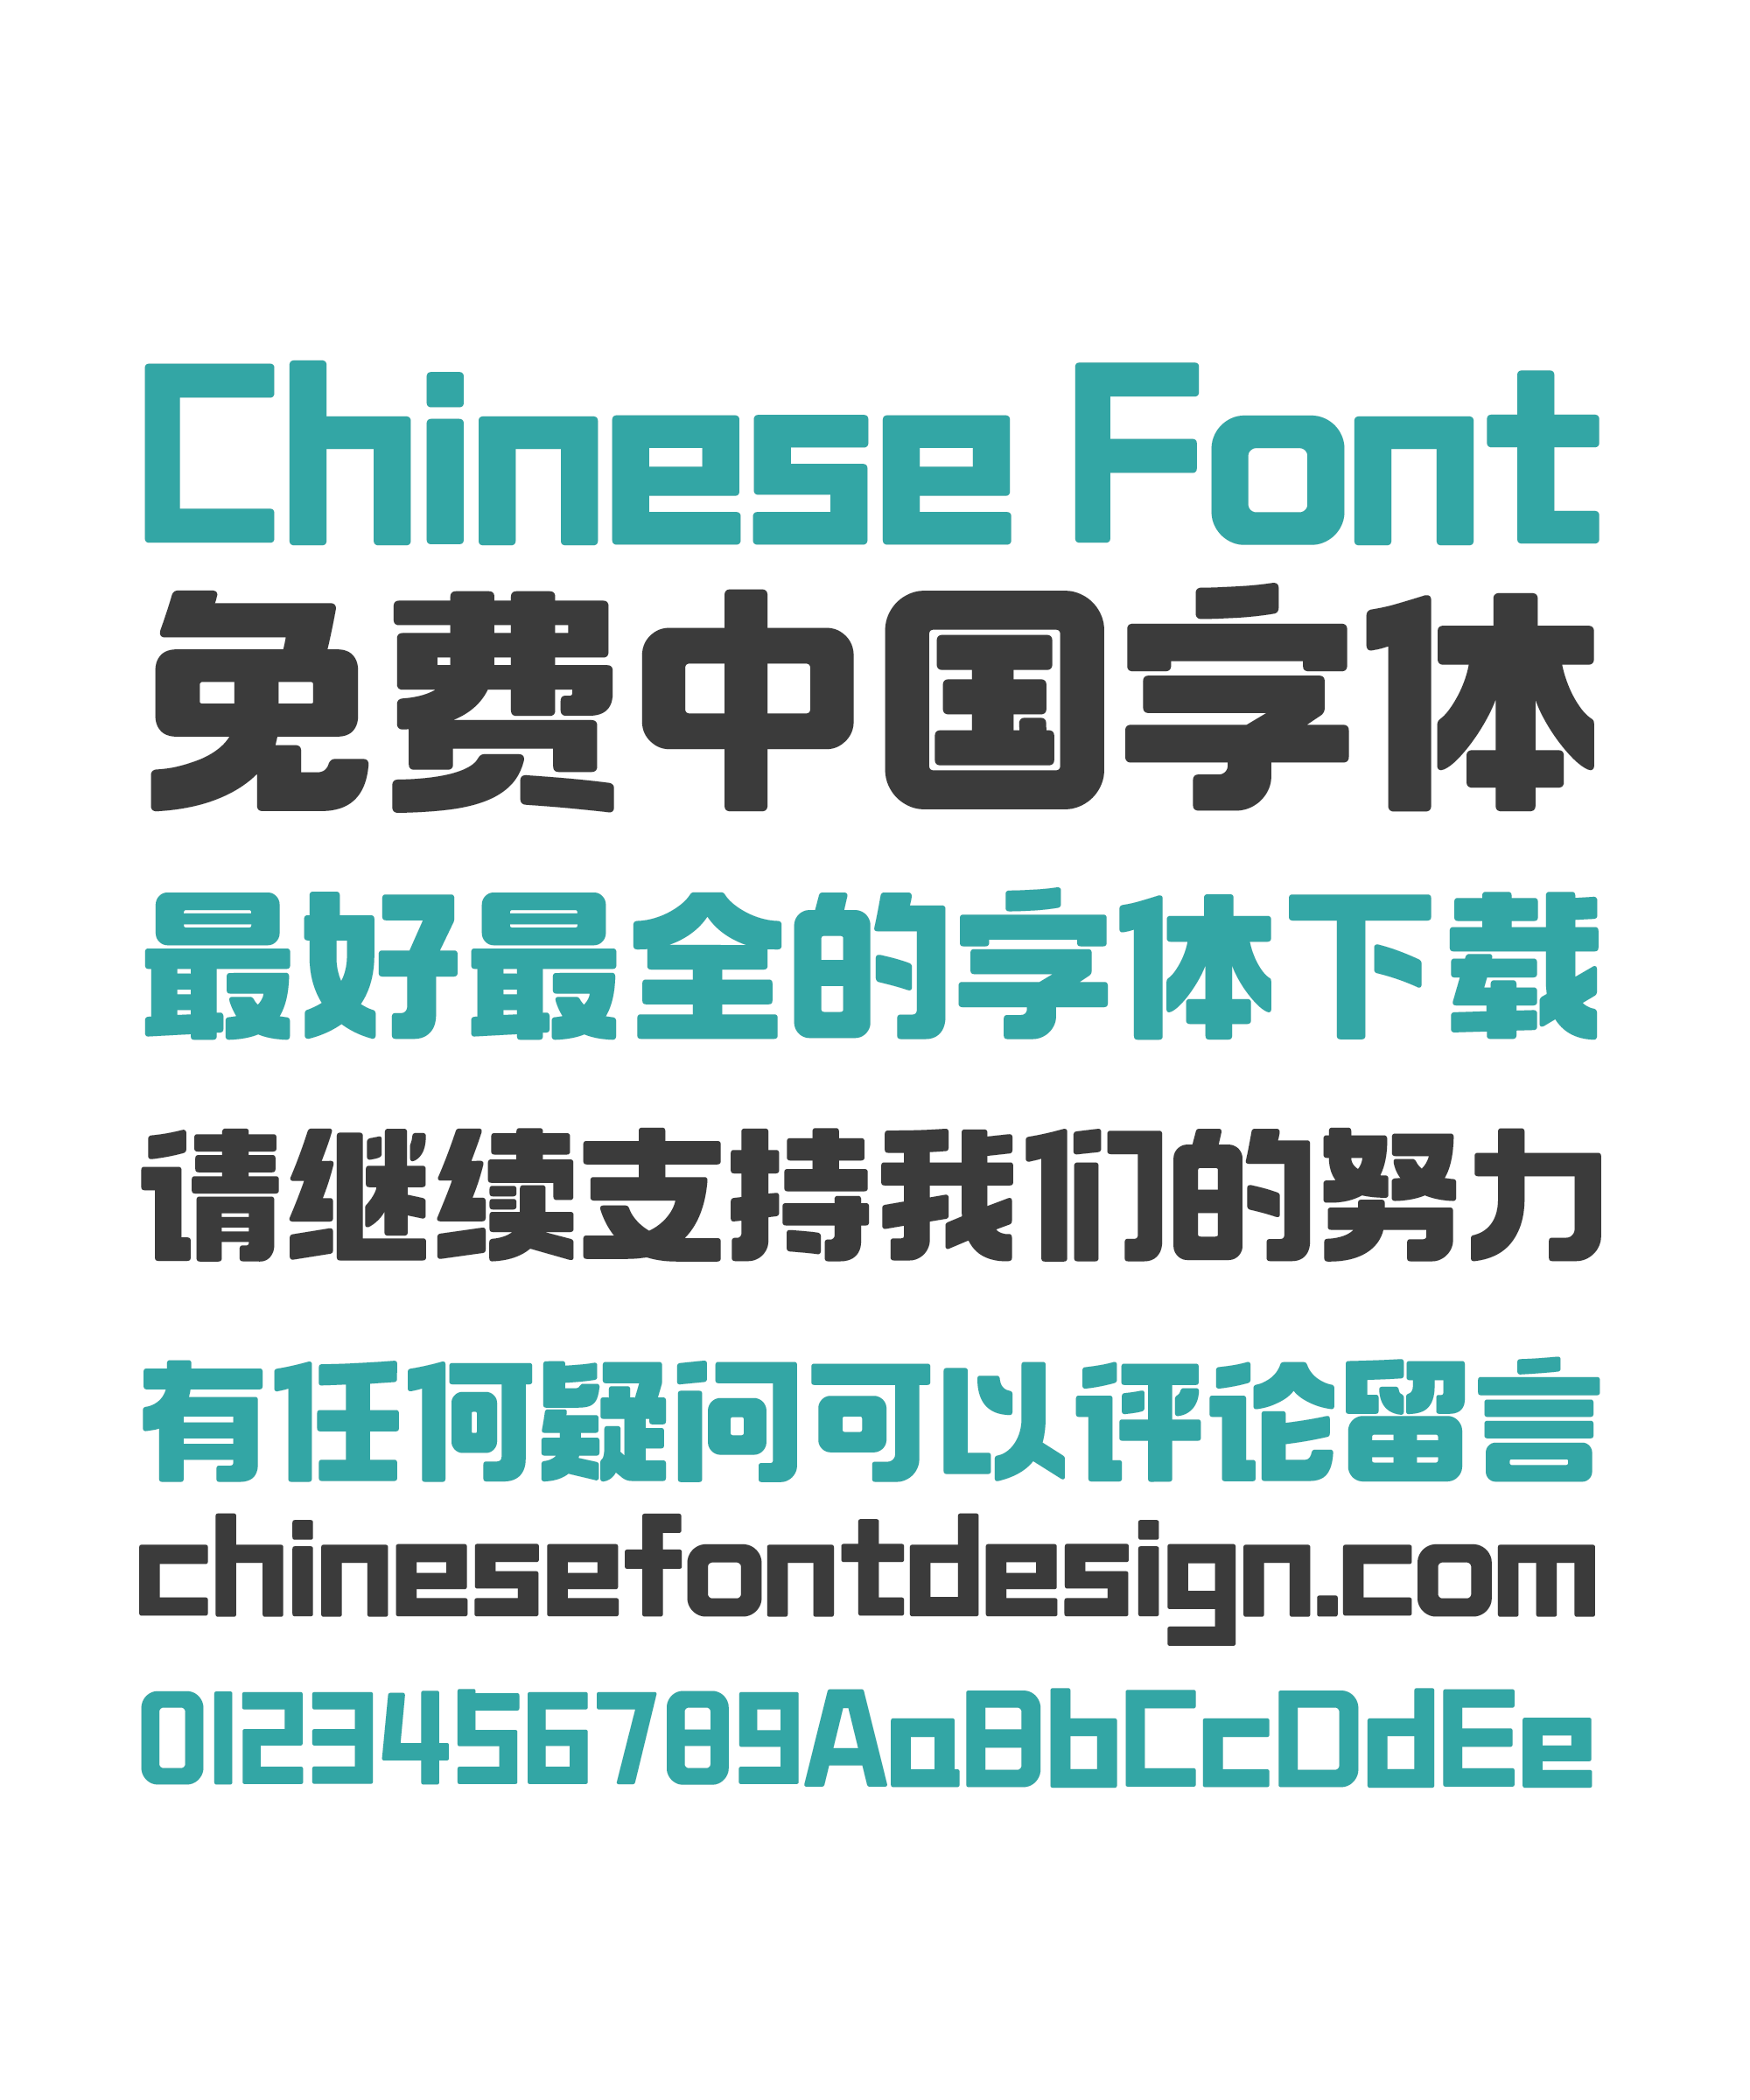 Zao Zi Gong Fang (Make Font) Rounded Bold Figure Chinese Font -Simplified Chinese Fonts